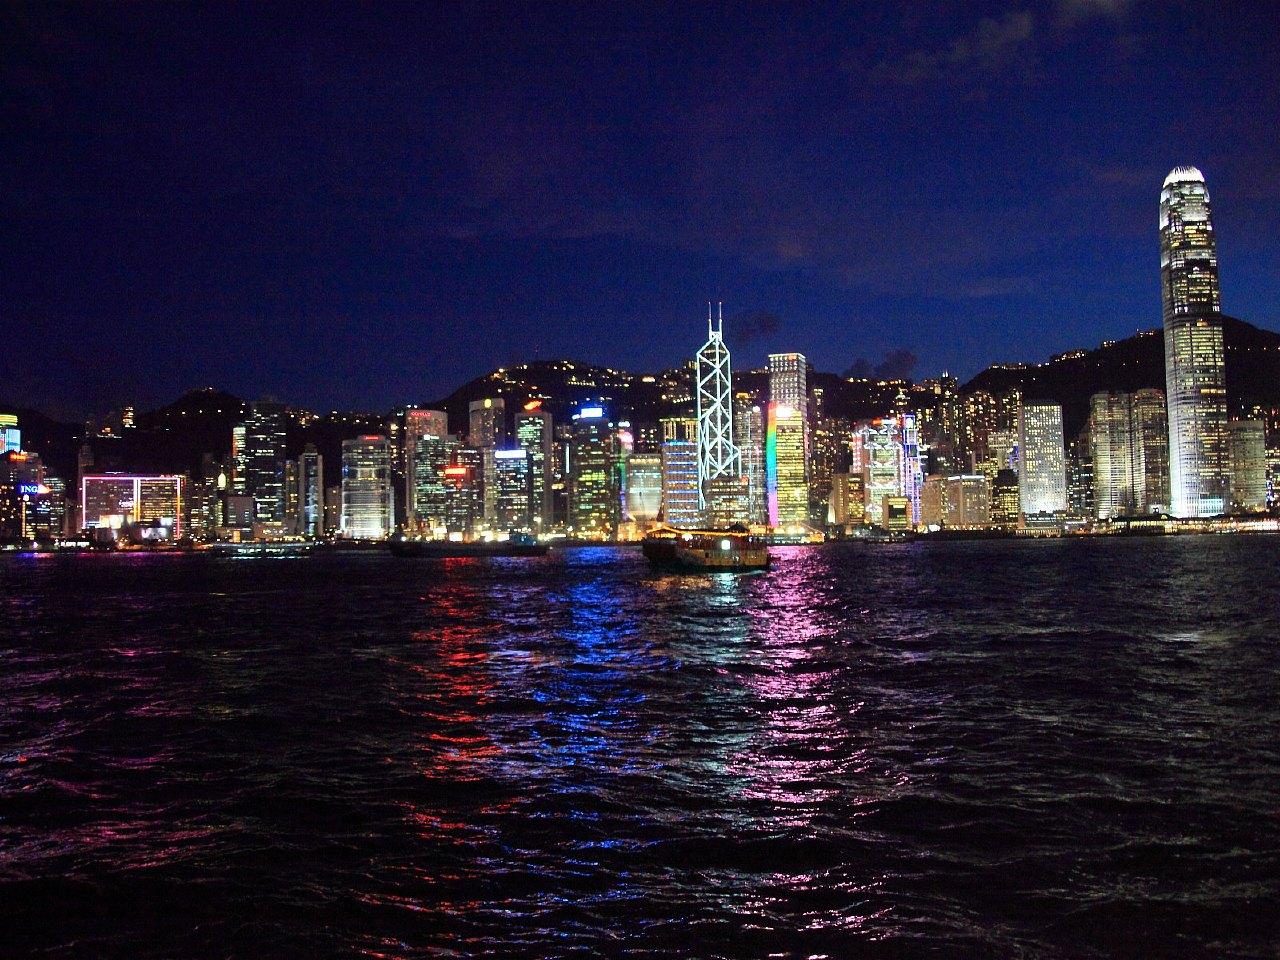 Wallpaper Wallpaper Quotes 香港夜景 Jpg Pictures To Pin On Pinterest